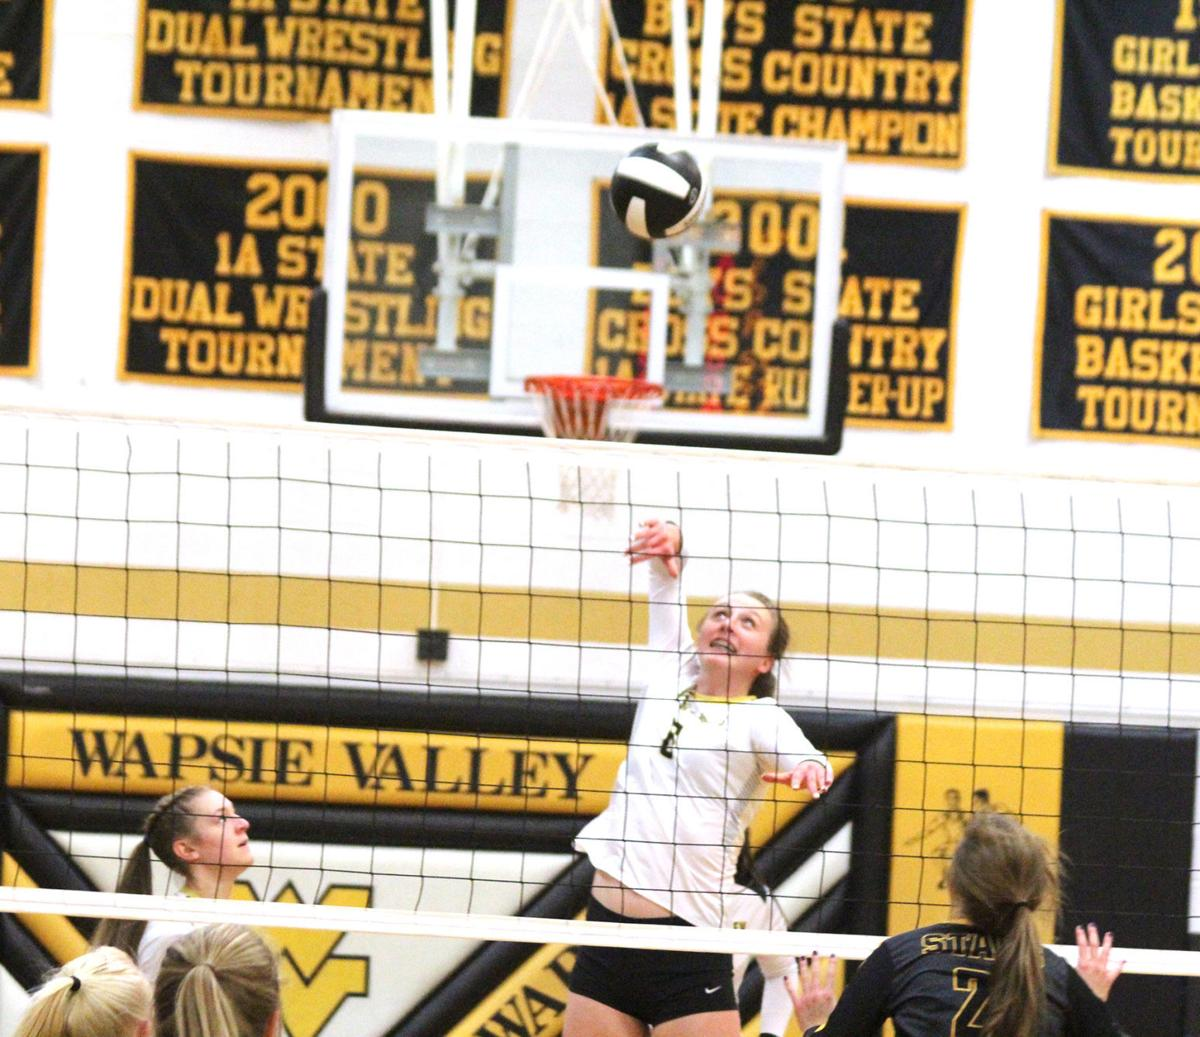 Wapsie Valley advances to semifinals with win over Starmont